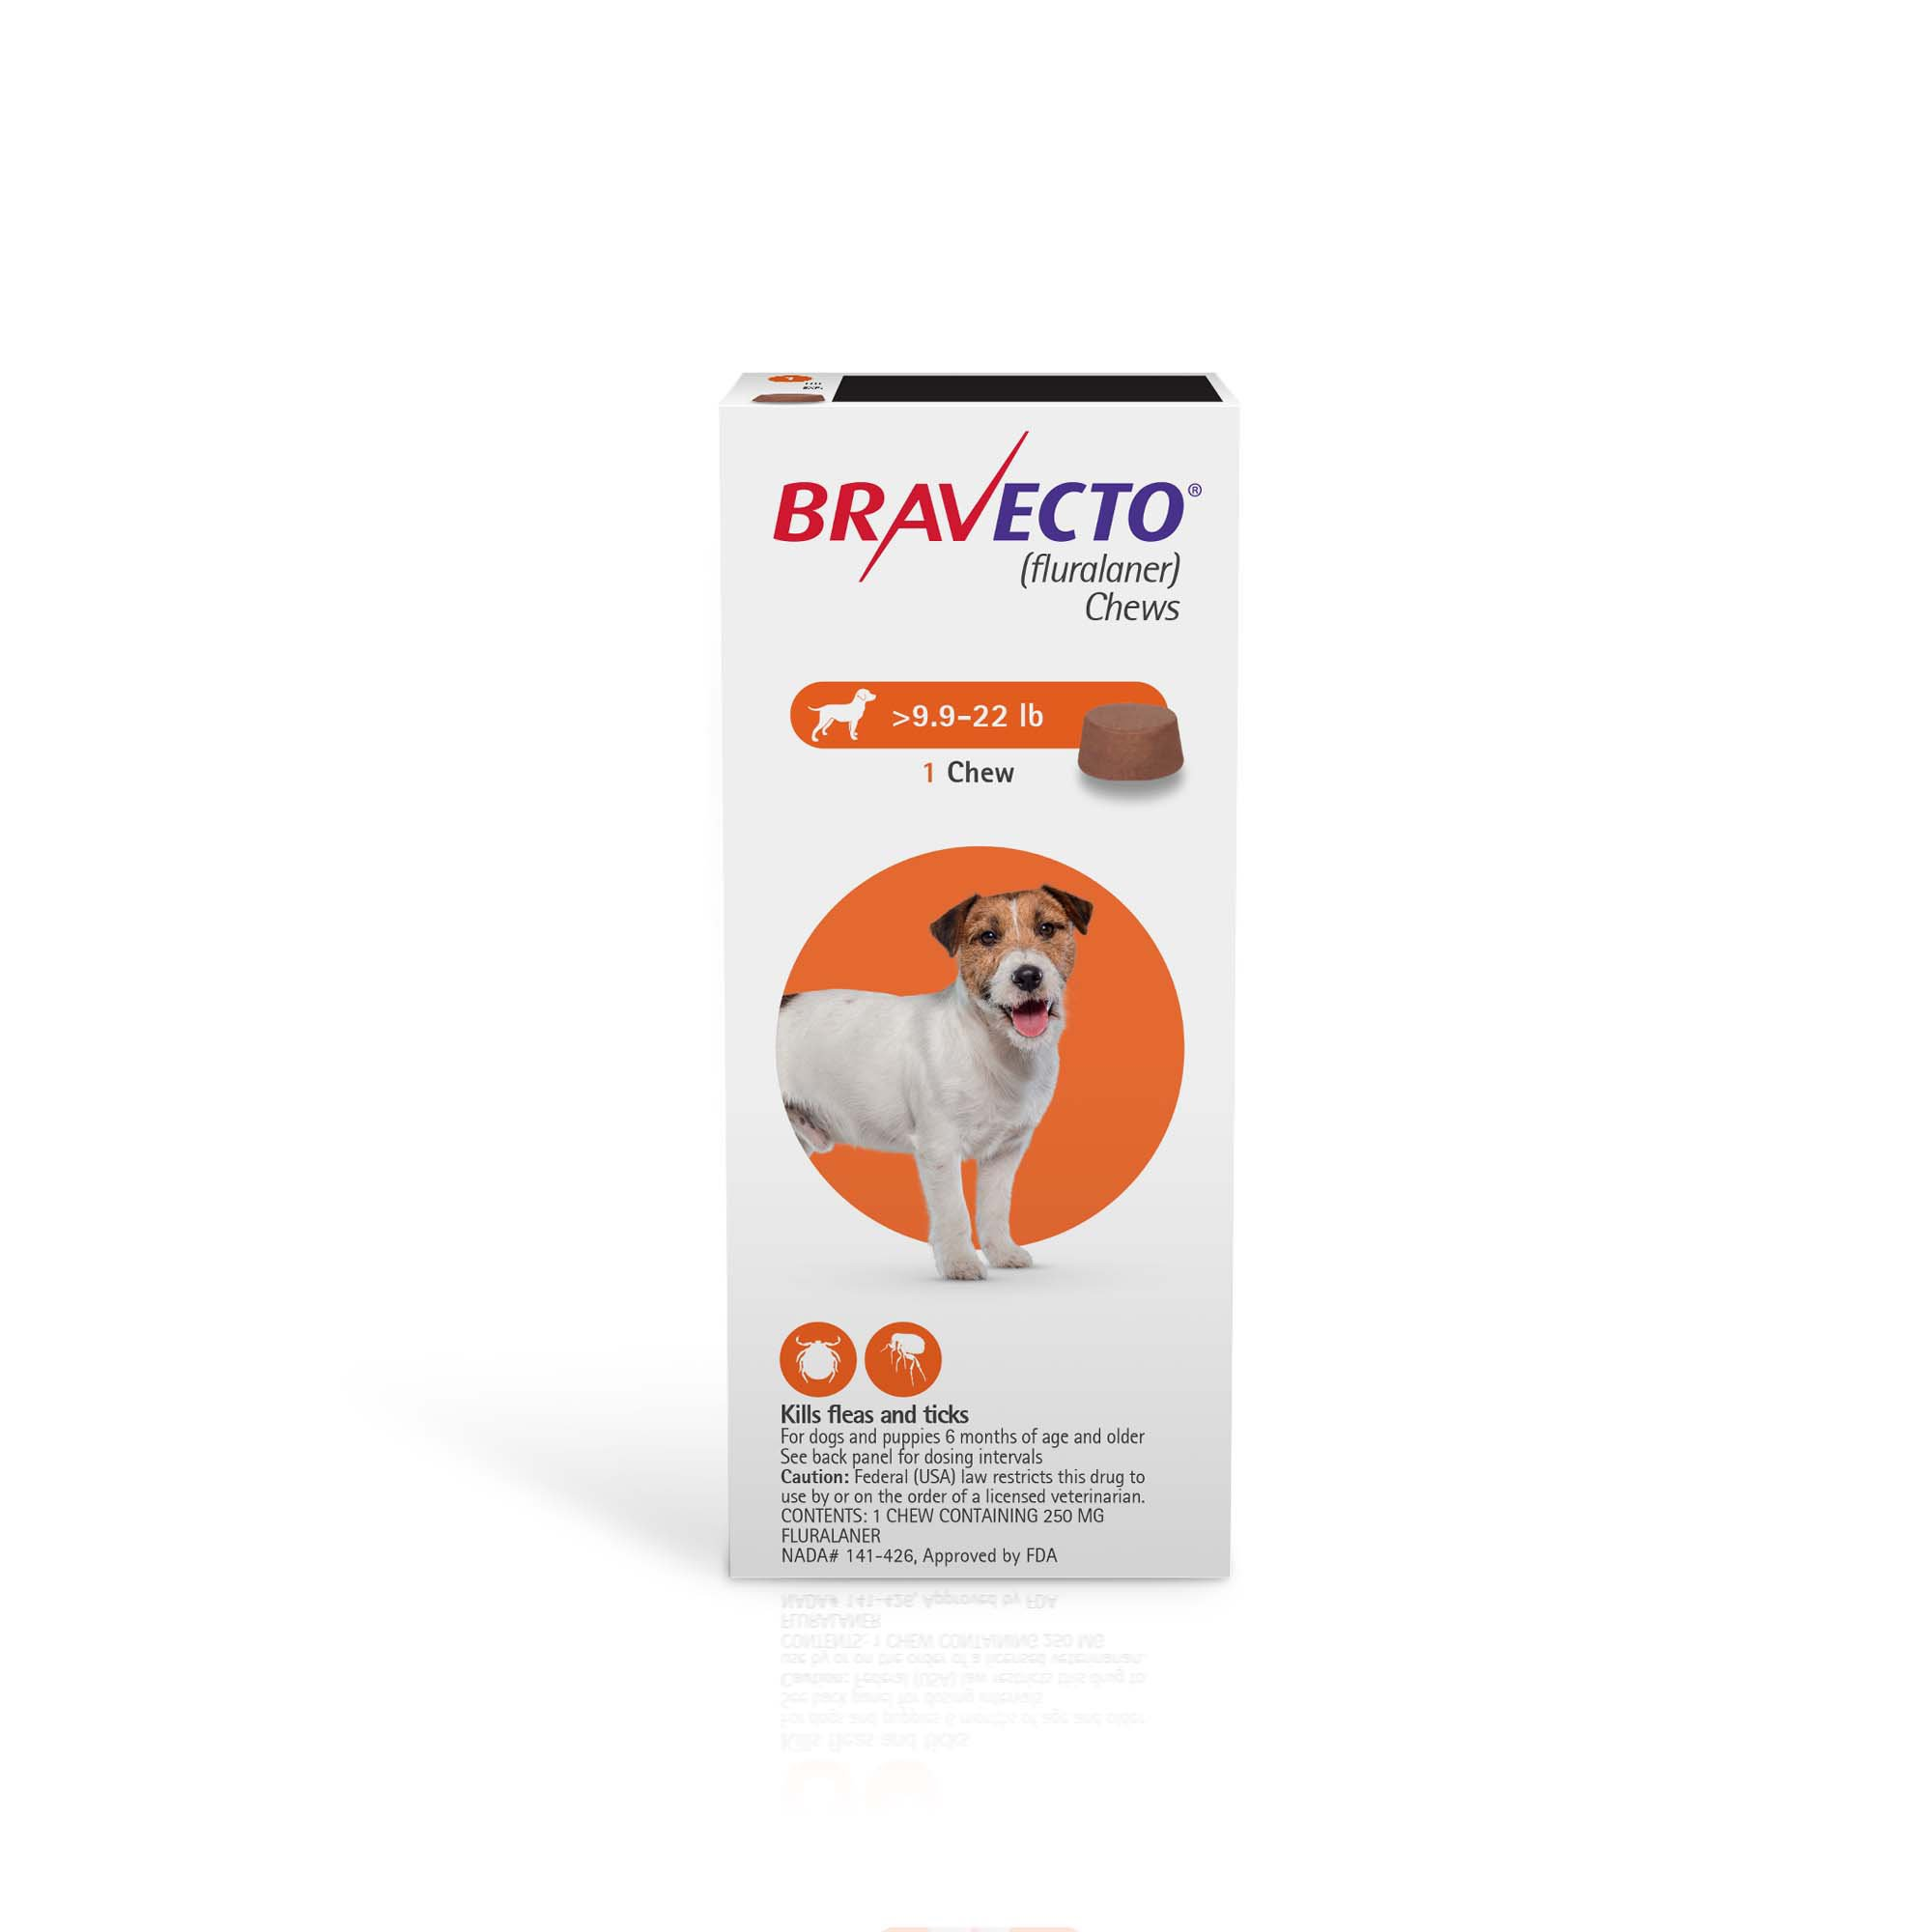 bravecto safe for dogs